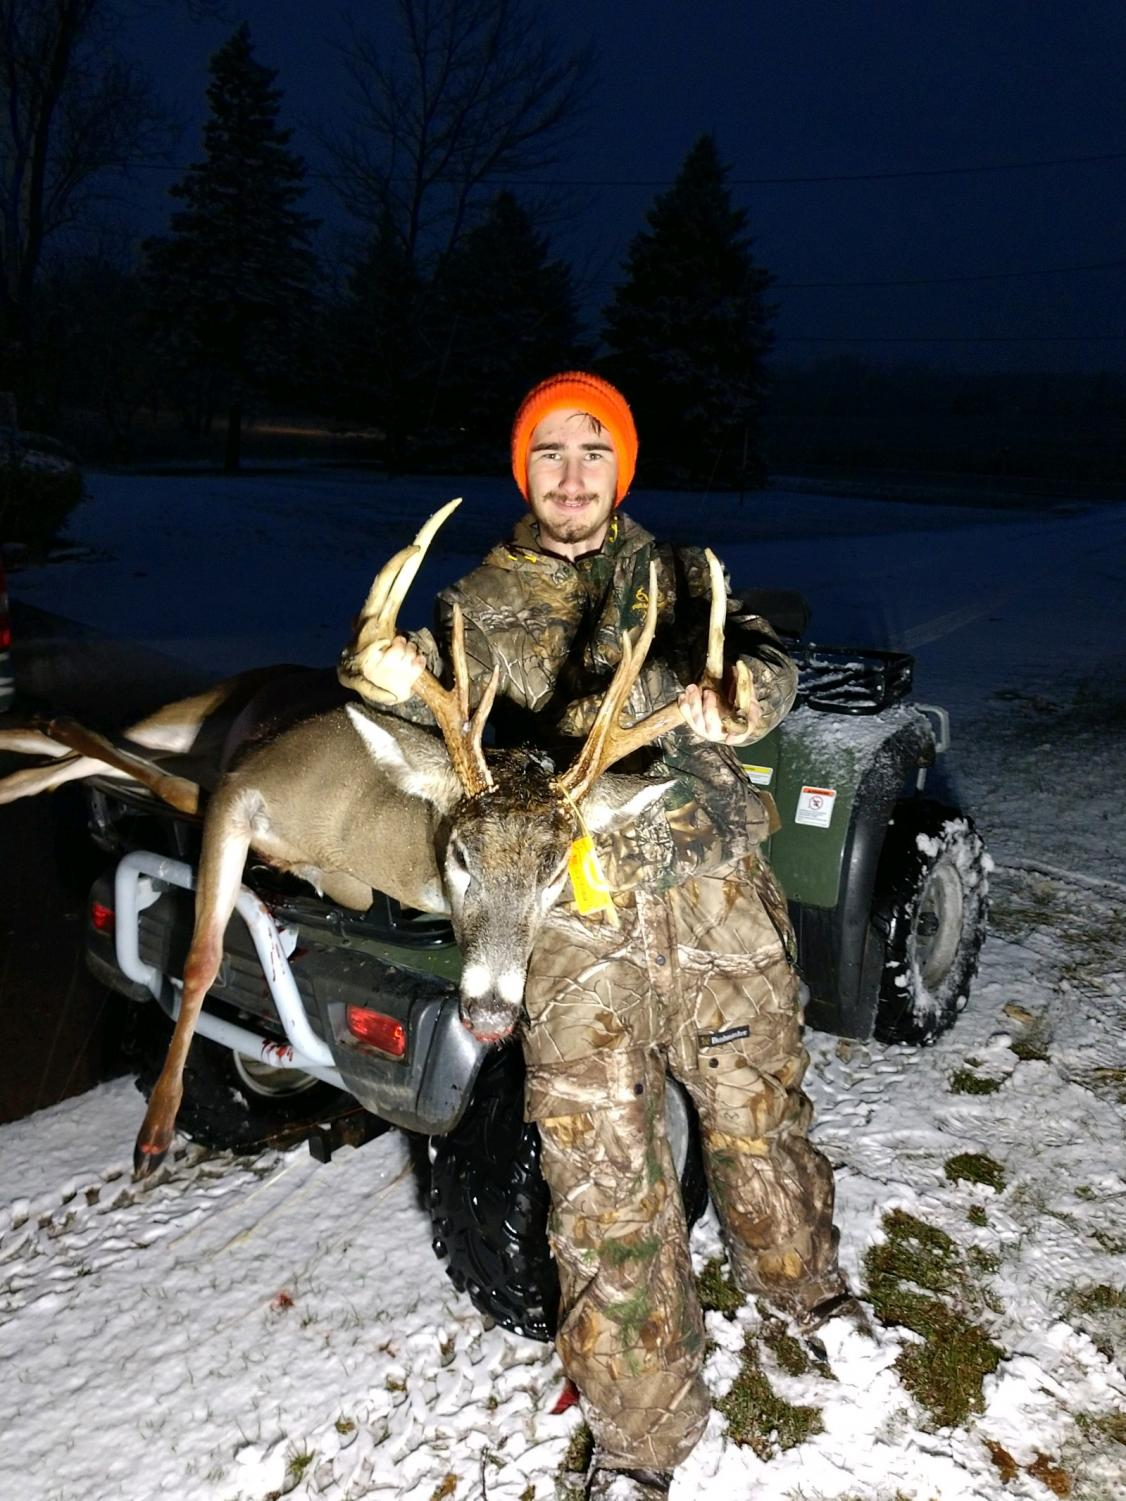 Mason Sears (12) with his 11 point Whitetail buck taken on opening day of the firearm season. Mason Sears was raised to be an outdoorsmen by his family.